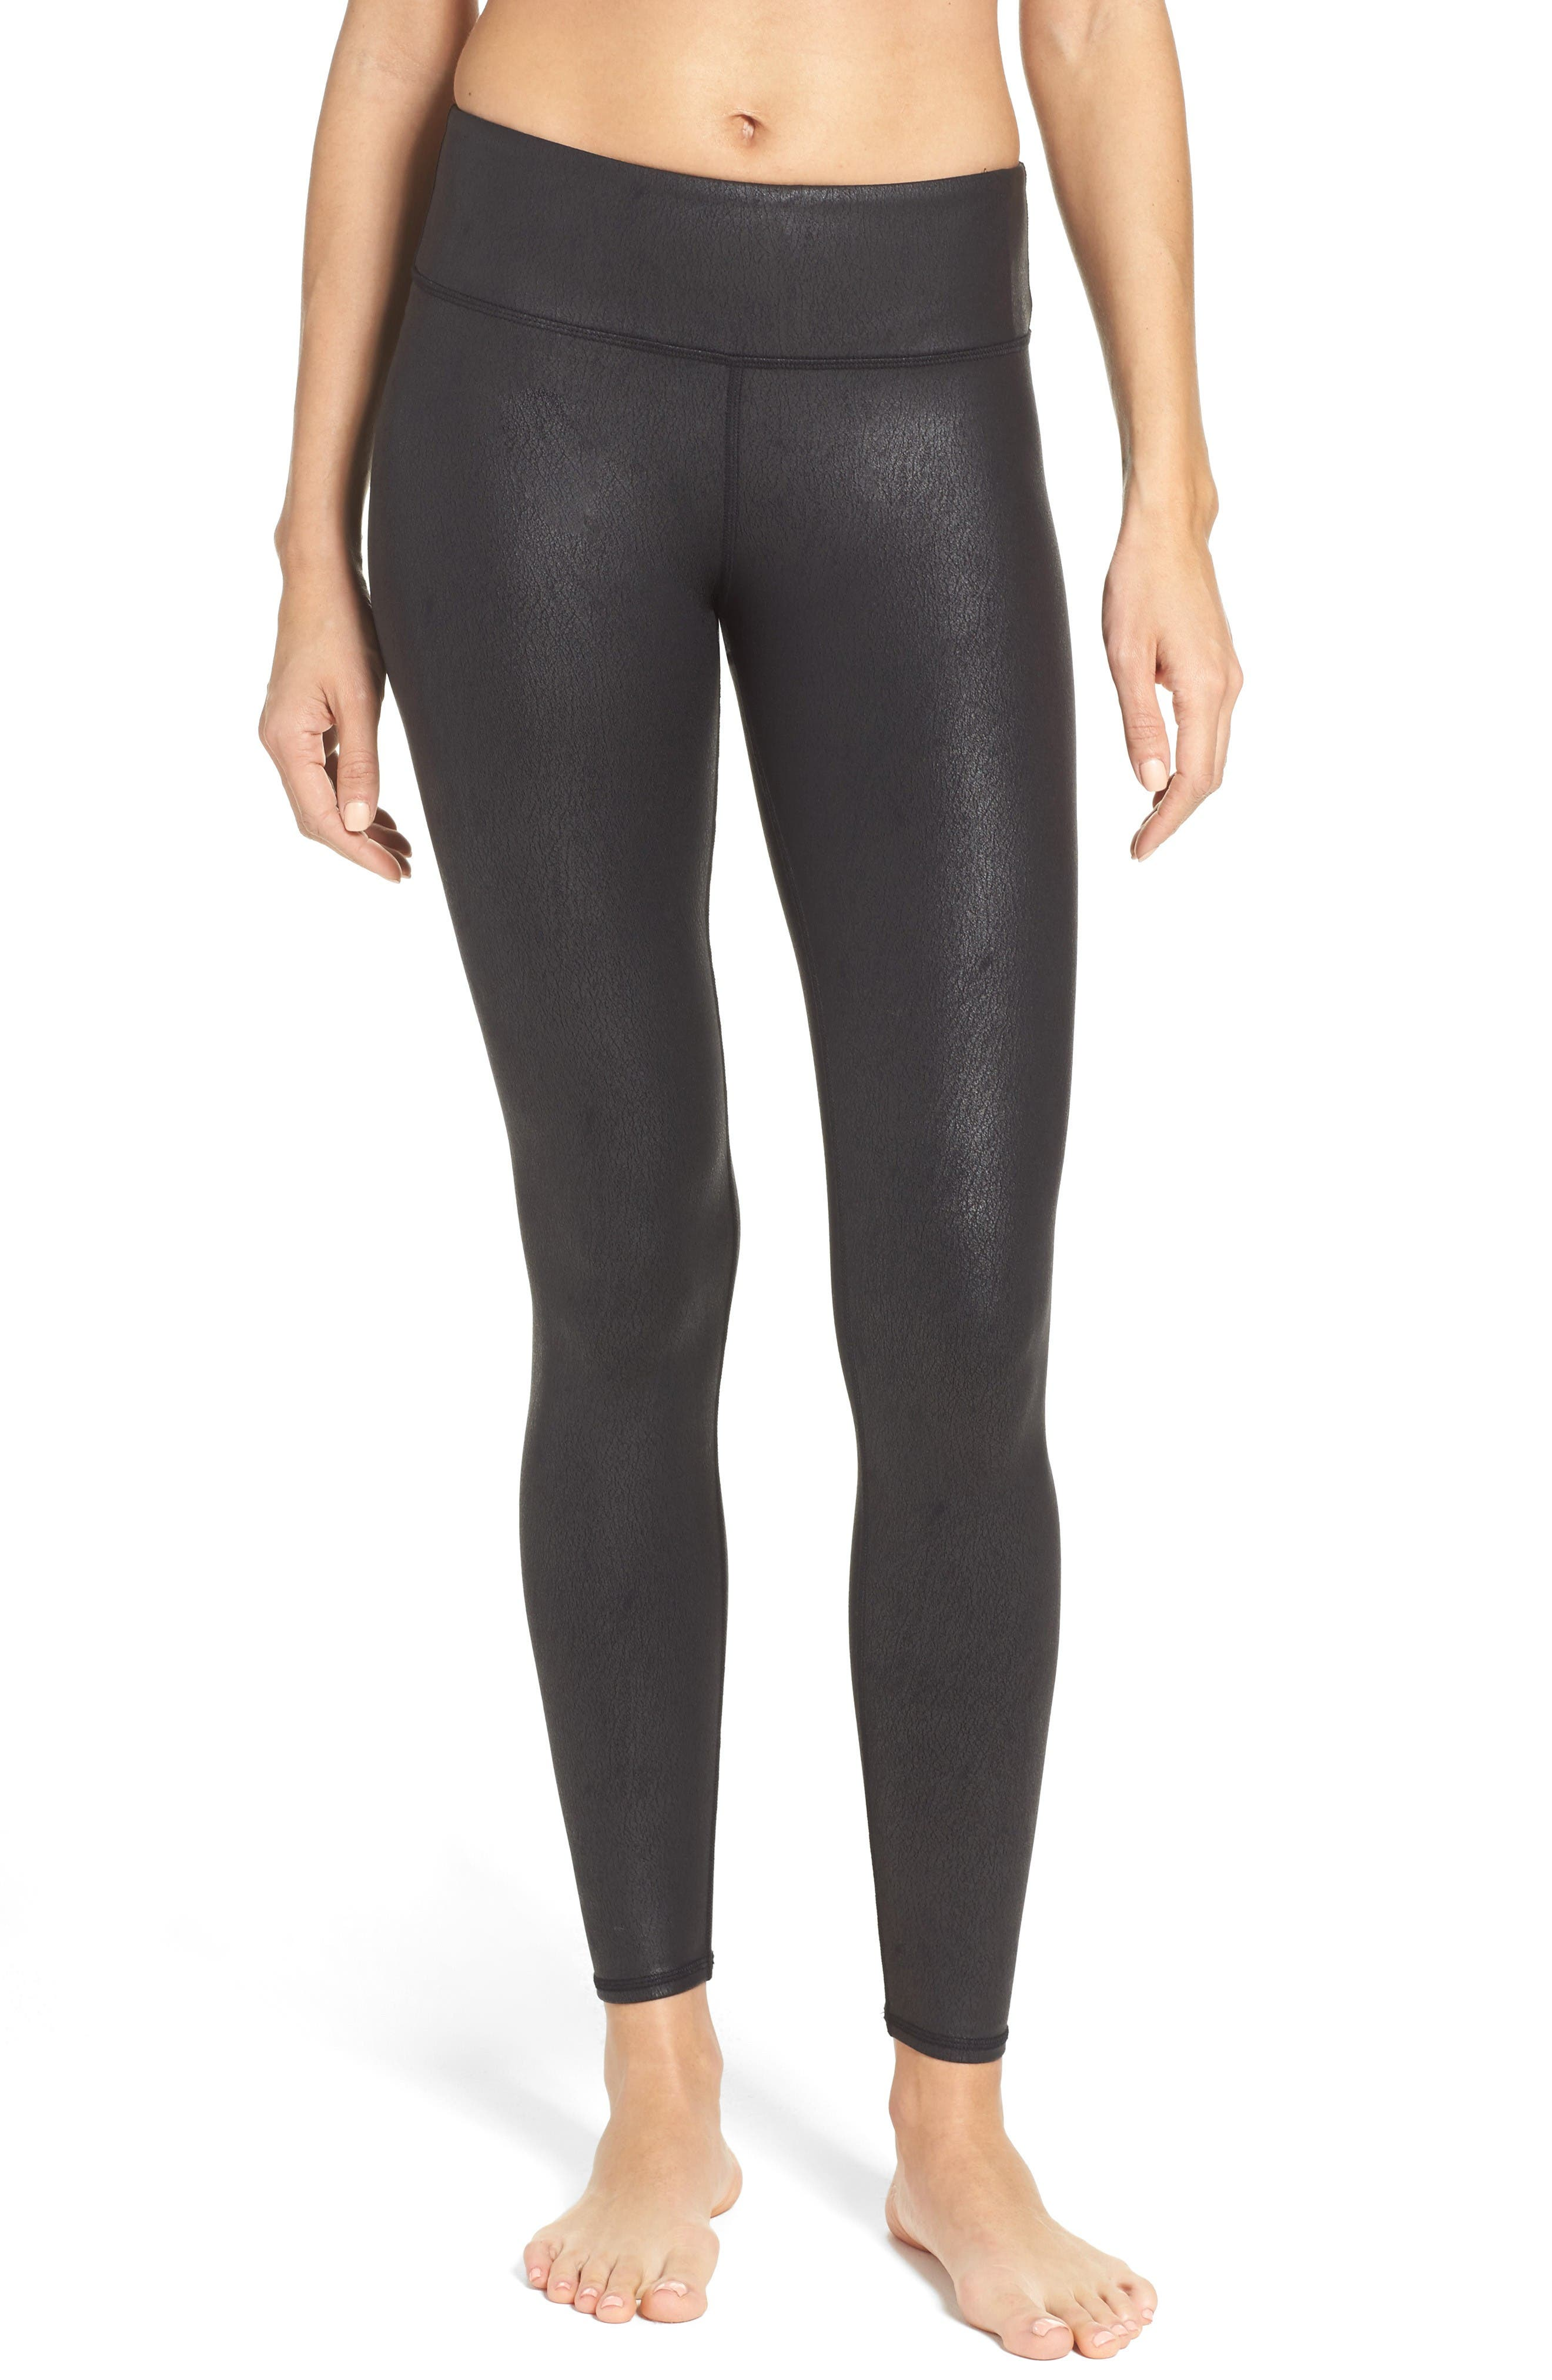 'Airbrushed' Leggings,                         Main,                         color, Black Performance Leather